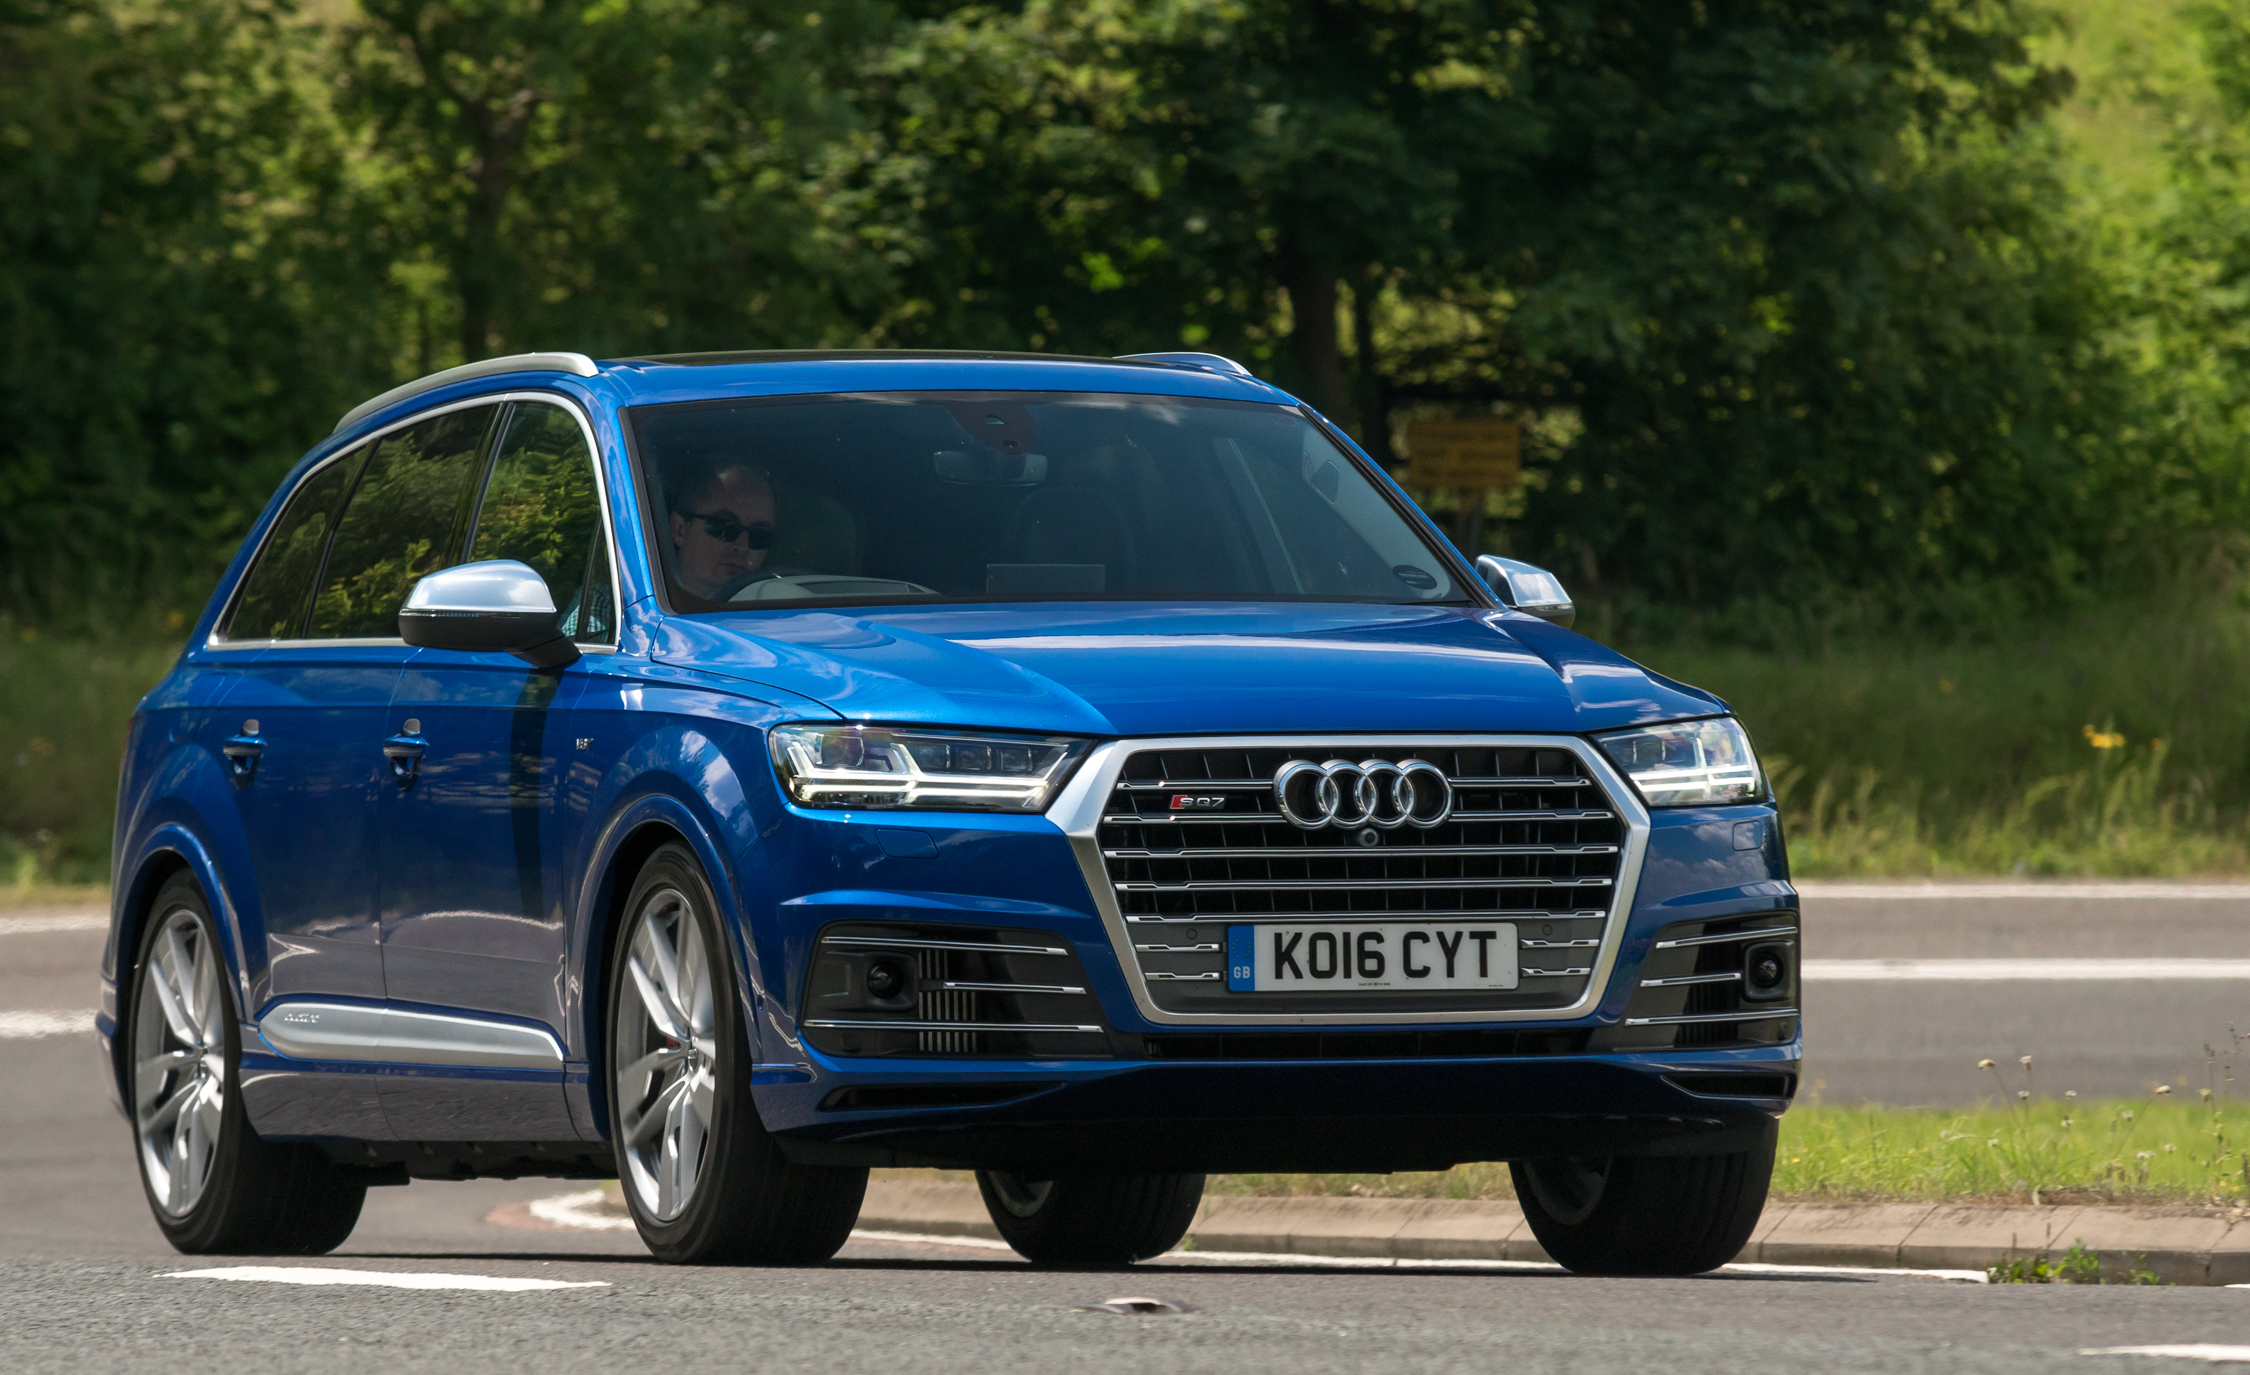 2017 Audi Sq7 Preview (View 11 of 15)